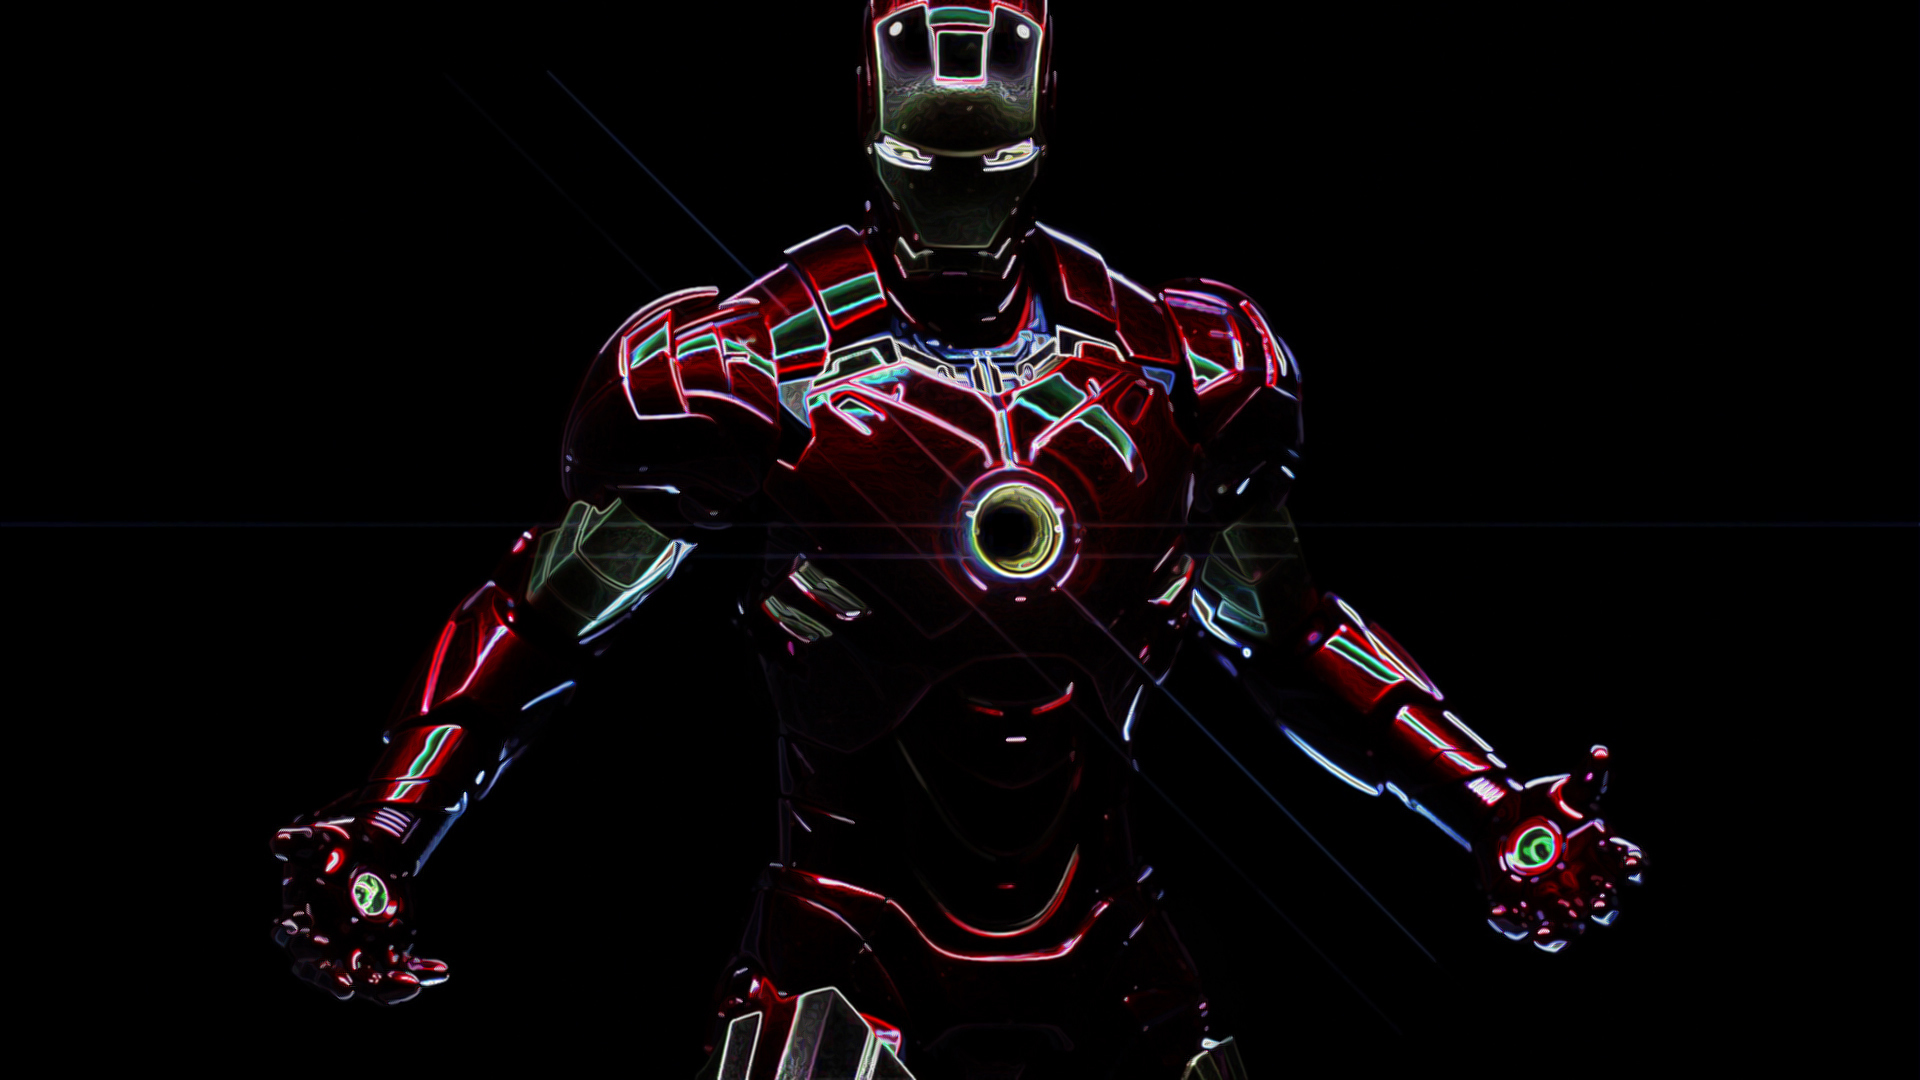 Download 41 Koleksi Wallpaper Android Iron Man Gratis Terbaik